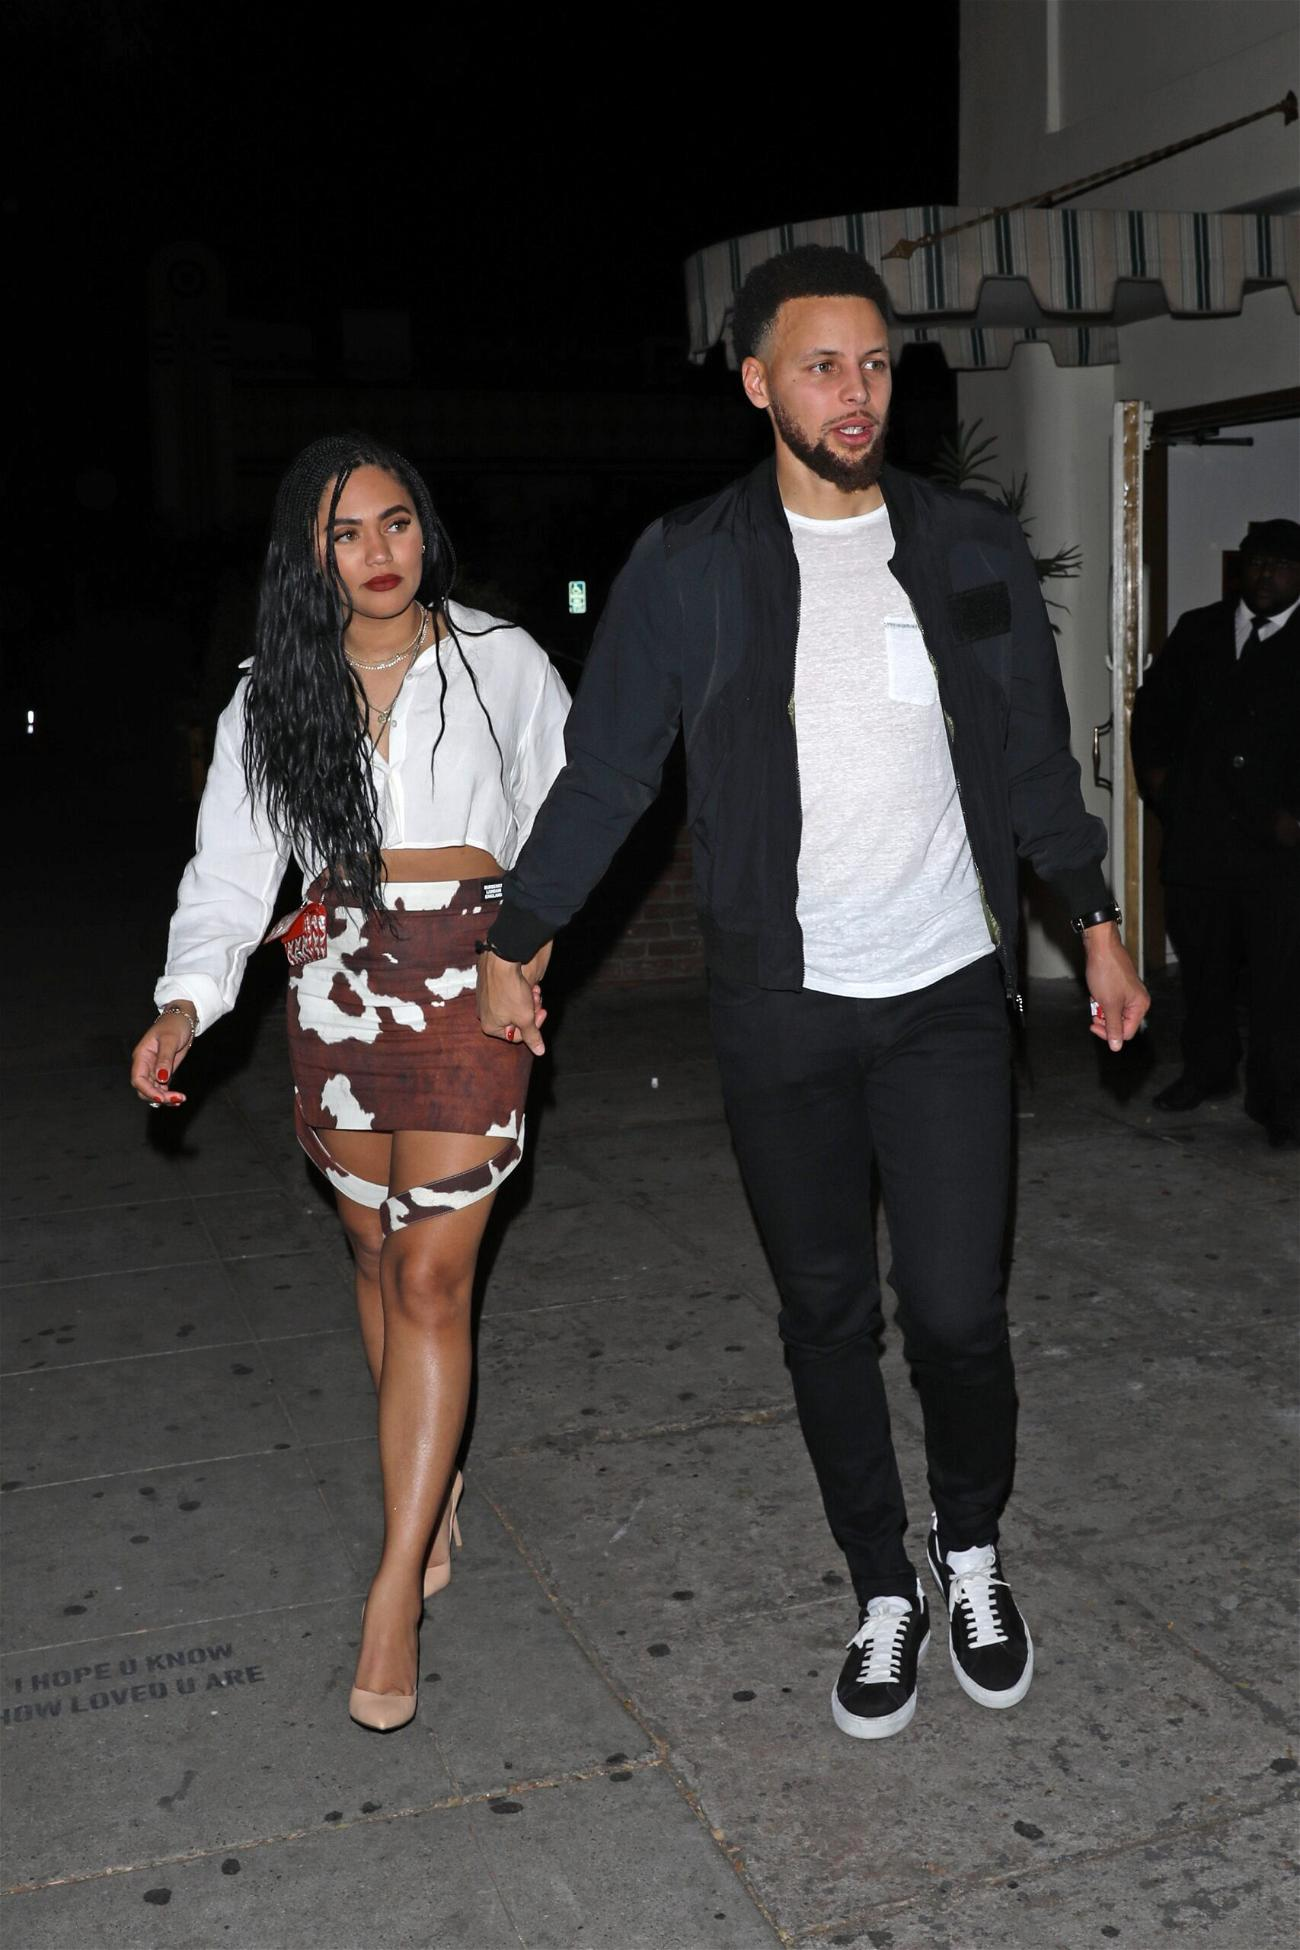 Stephen Curry and Ayesha Curry grab dinner at the Delilah restaurant